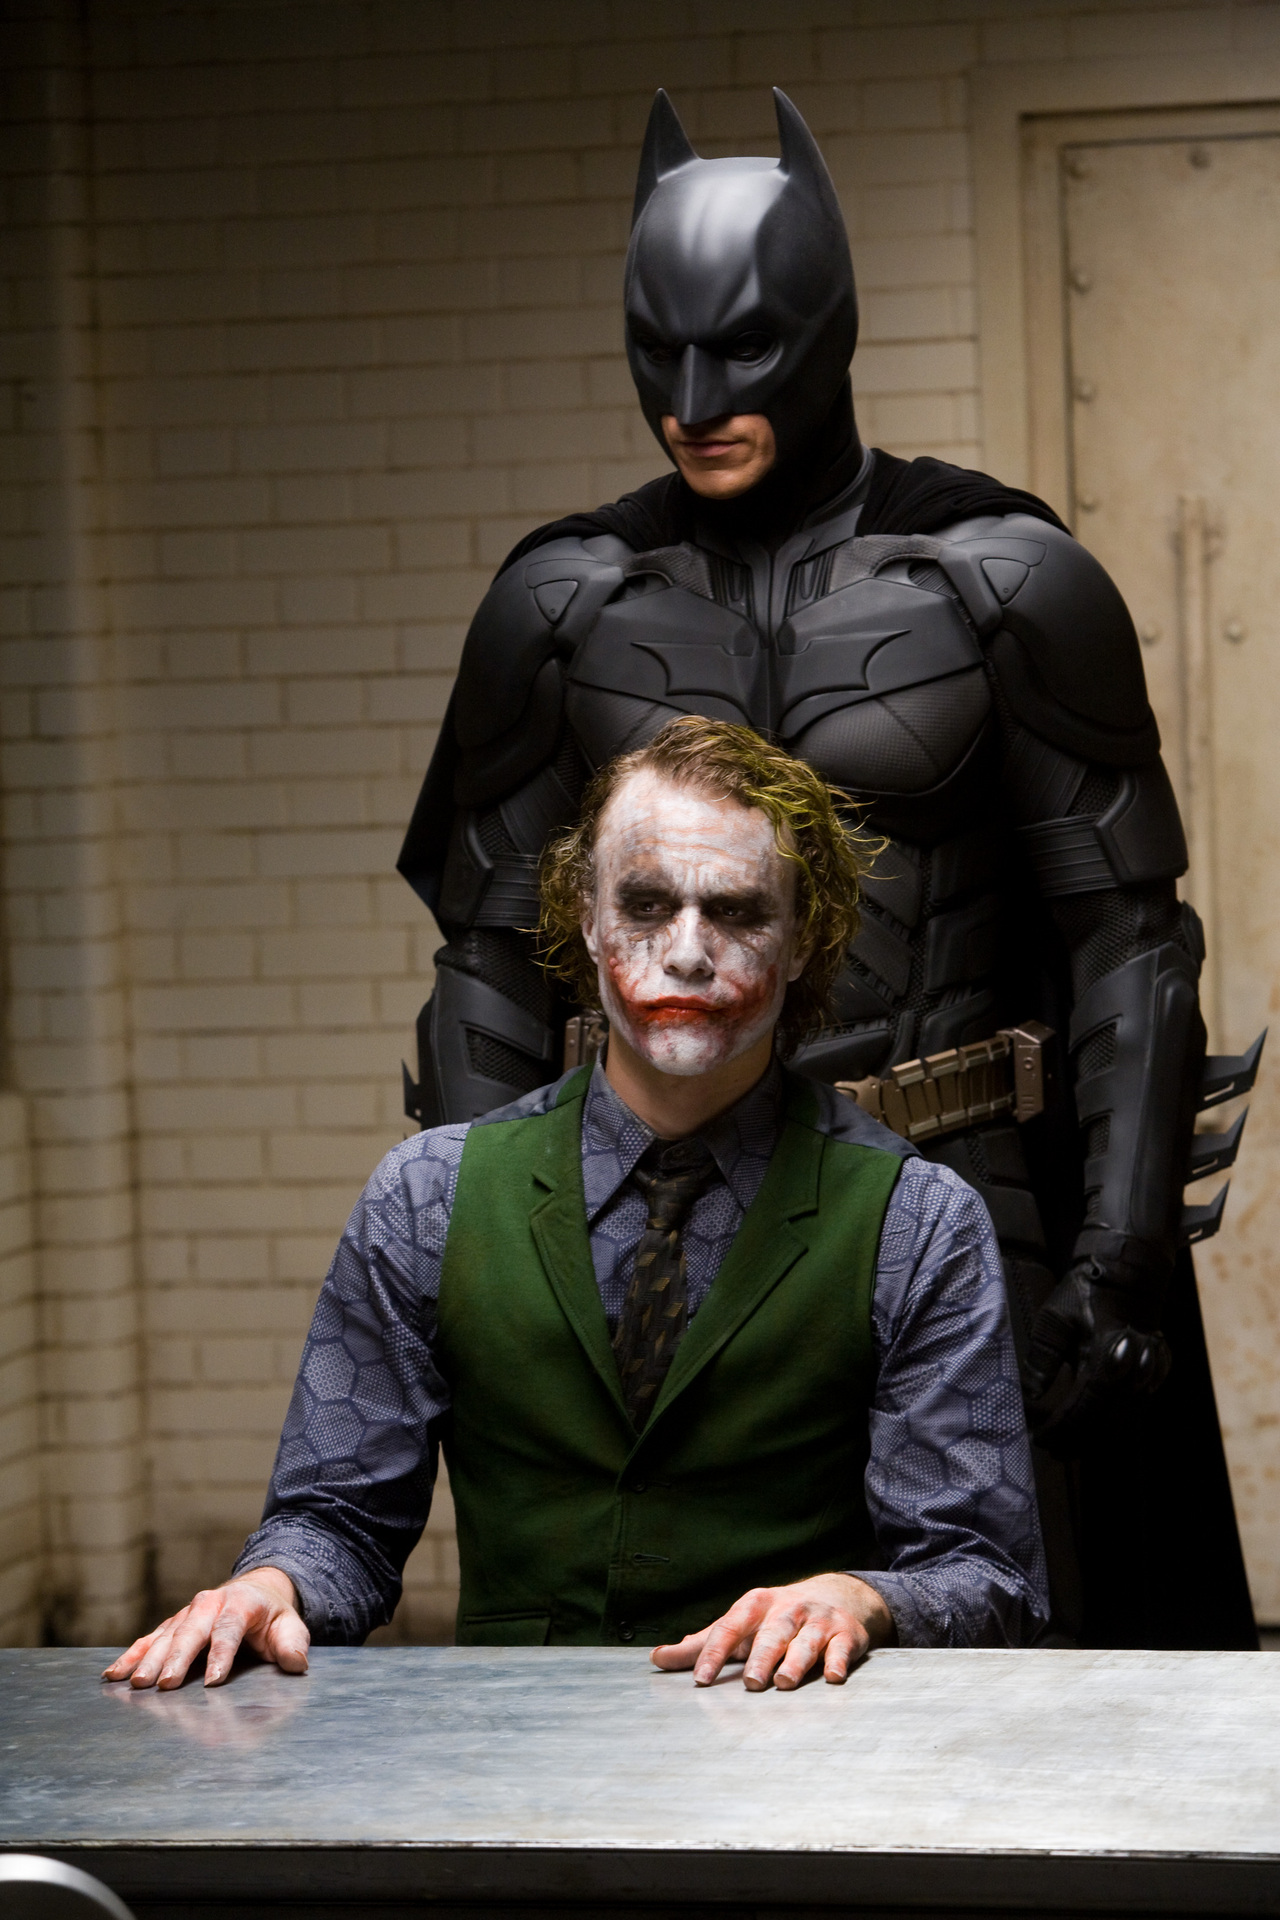 the dark knight images - photo #24